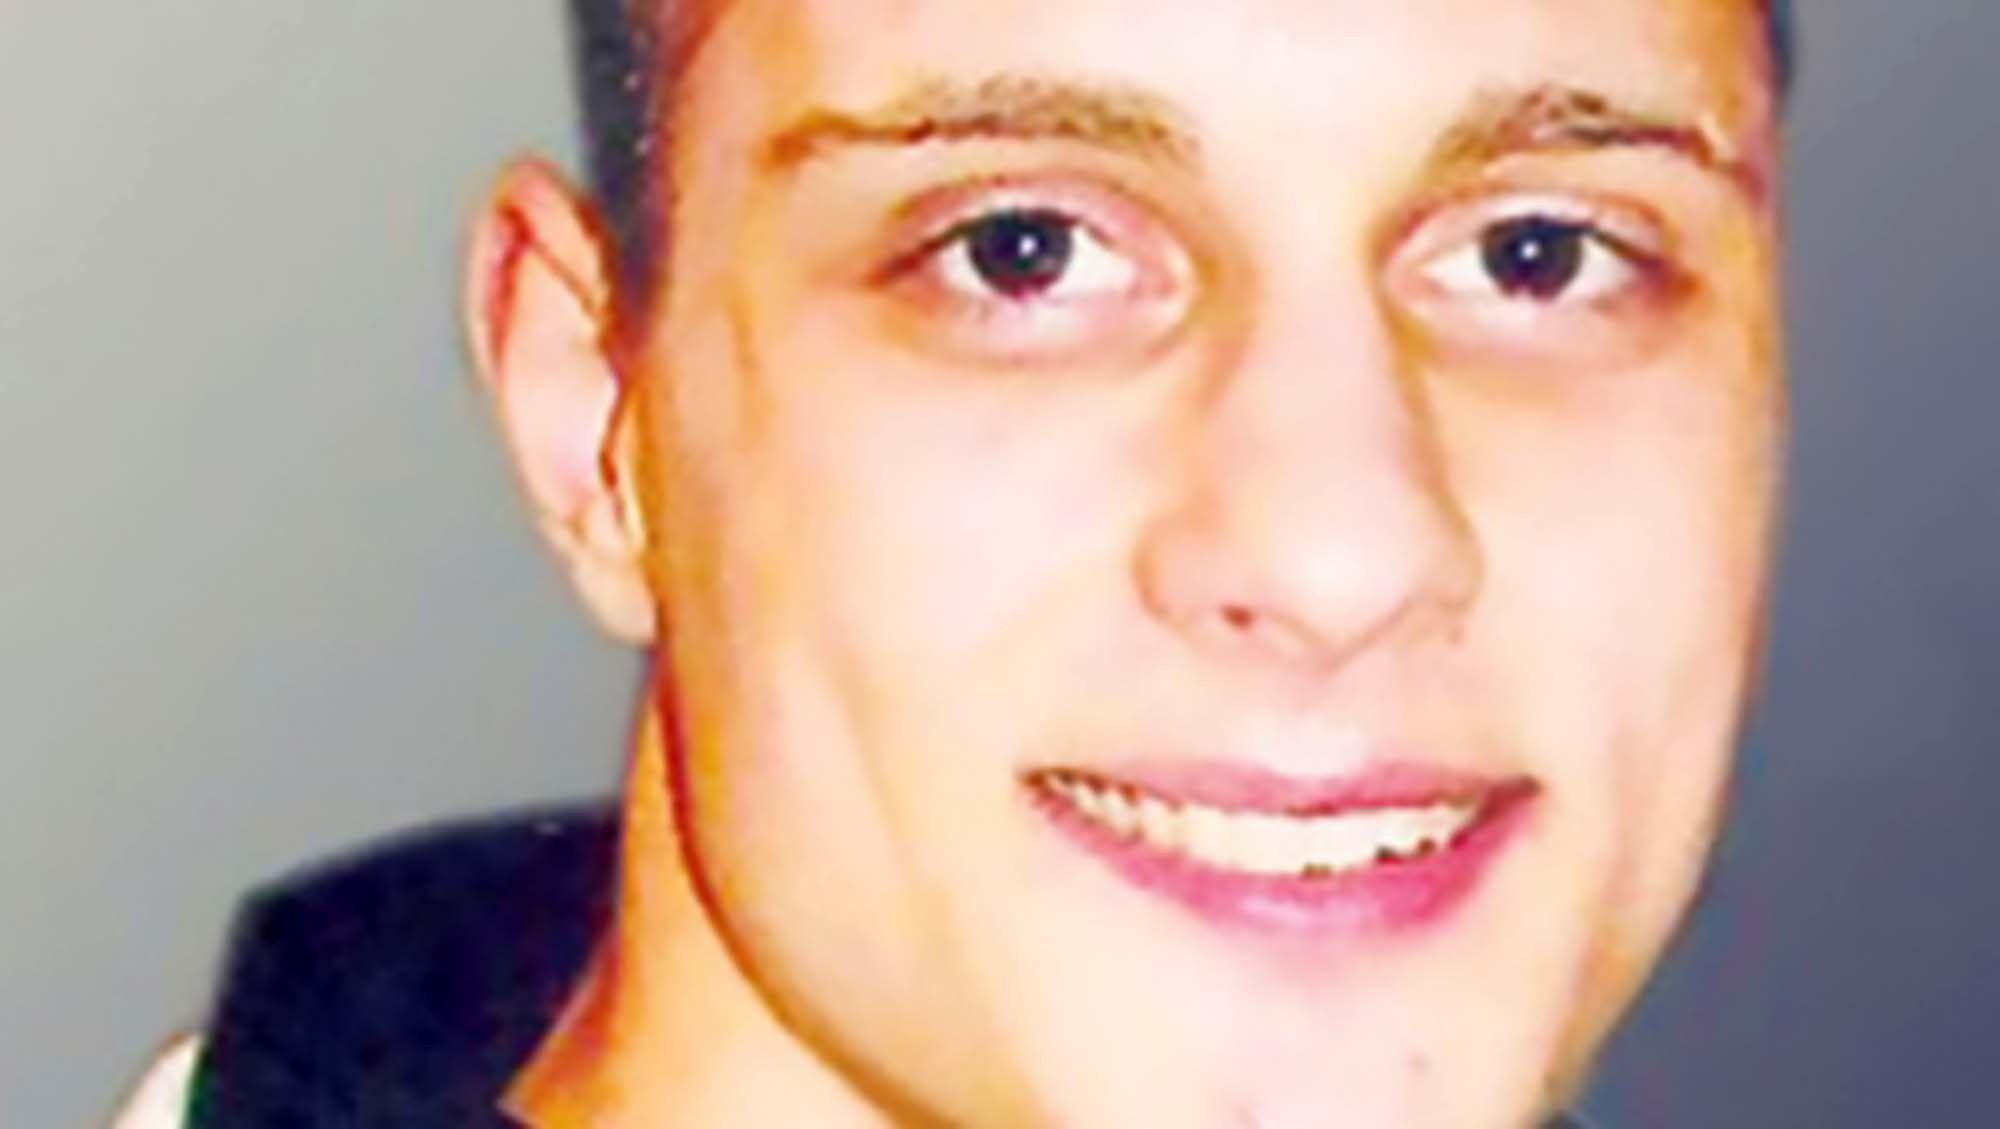 Murderer 'killed cellmate then ate part of his face'